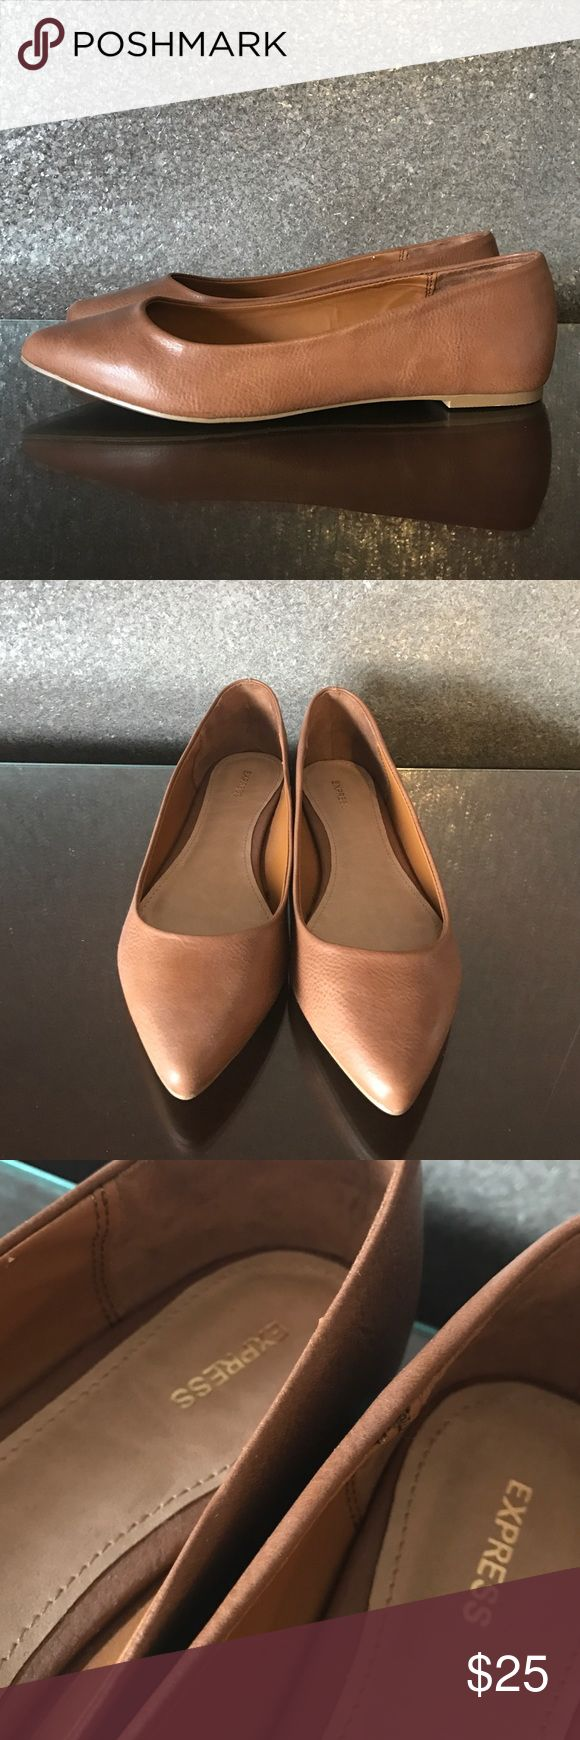 NWOT Express Brown Pointed Toe Flats Brown pointed toe flats. I purchased NEW from Express.com. Size 8. Brown lining. Brand new, never worn. Express Shoes Flats & Loafers